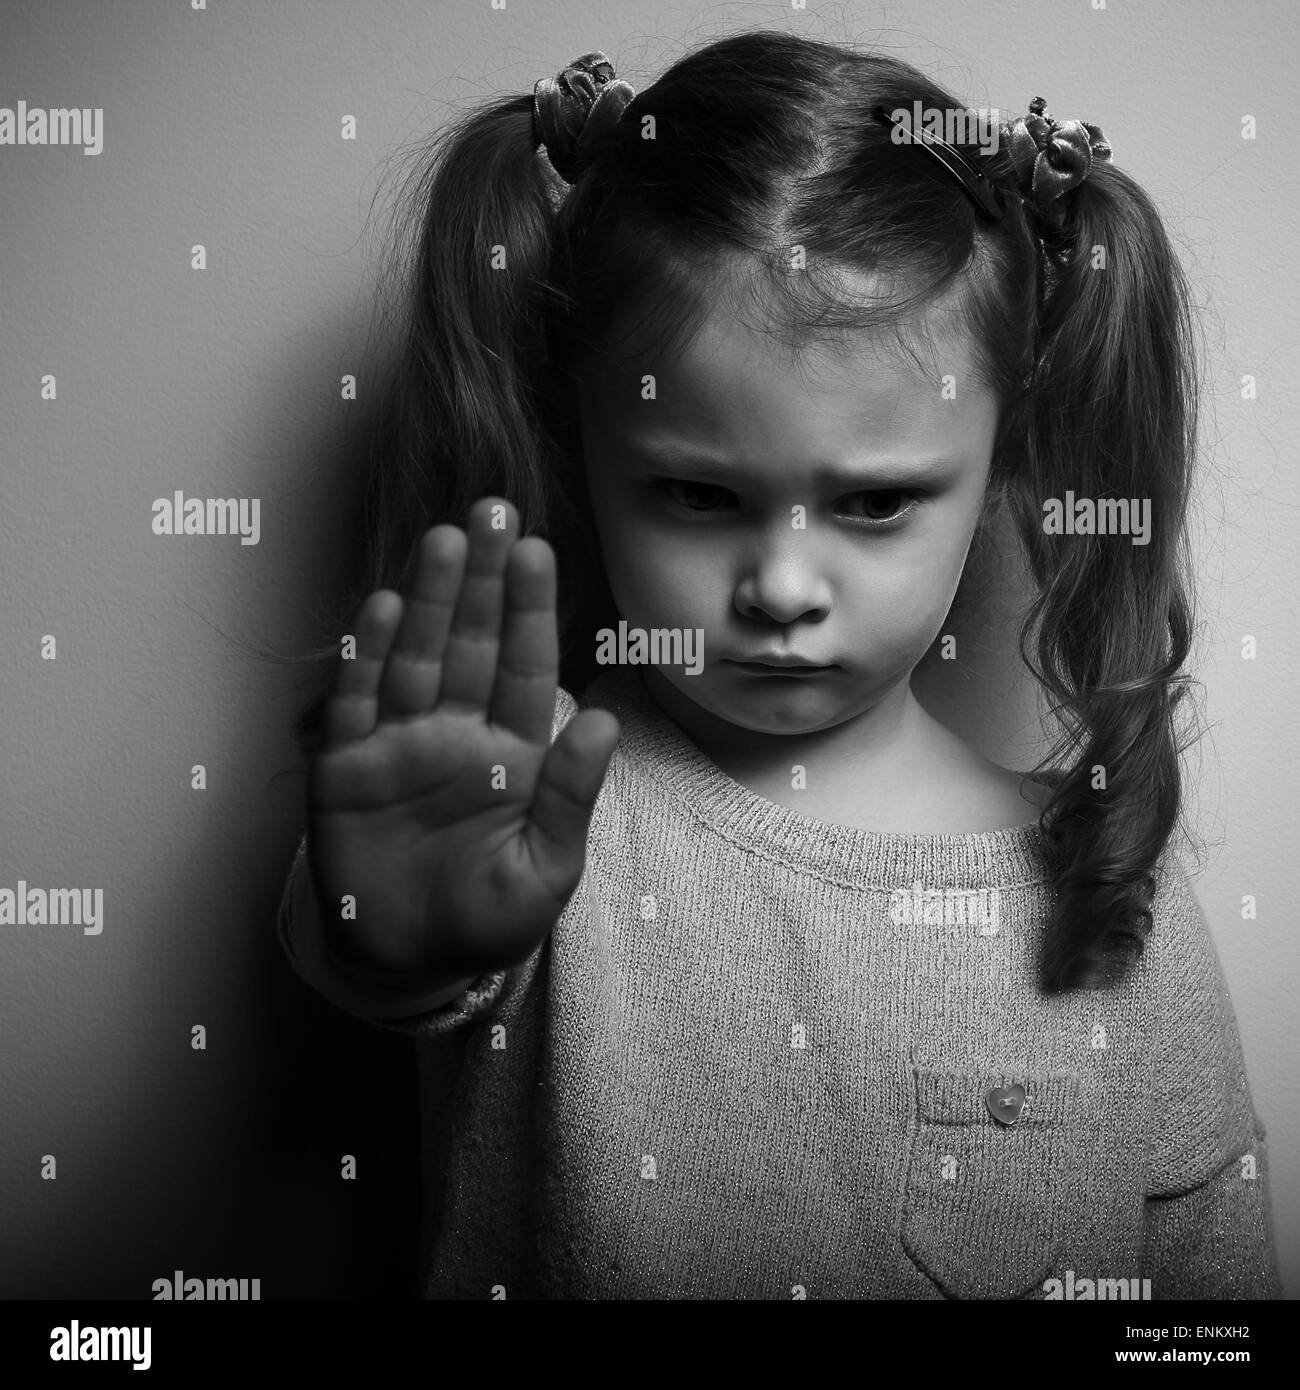 Kid girl showing hand signaling to stop violence and pain and looking down with sad face. Black and white portrait - Stock Image